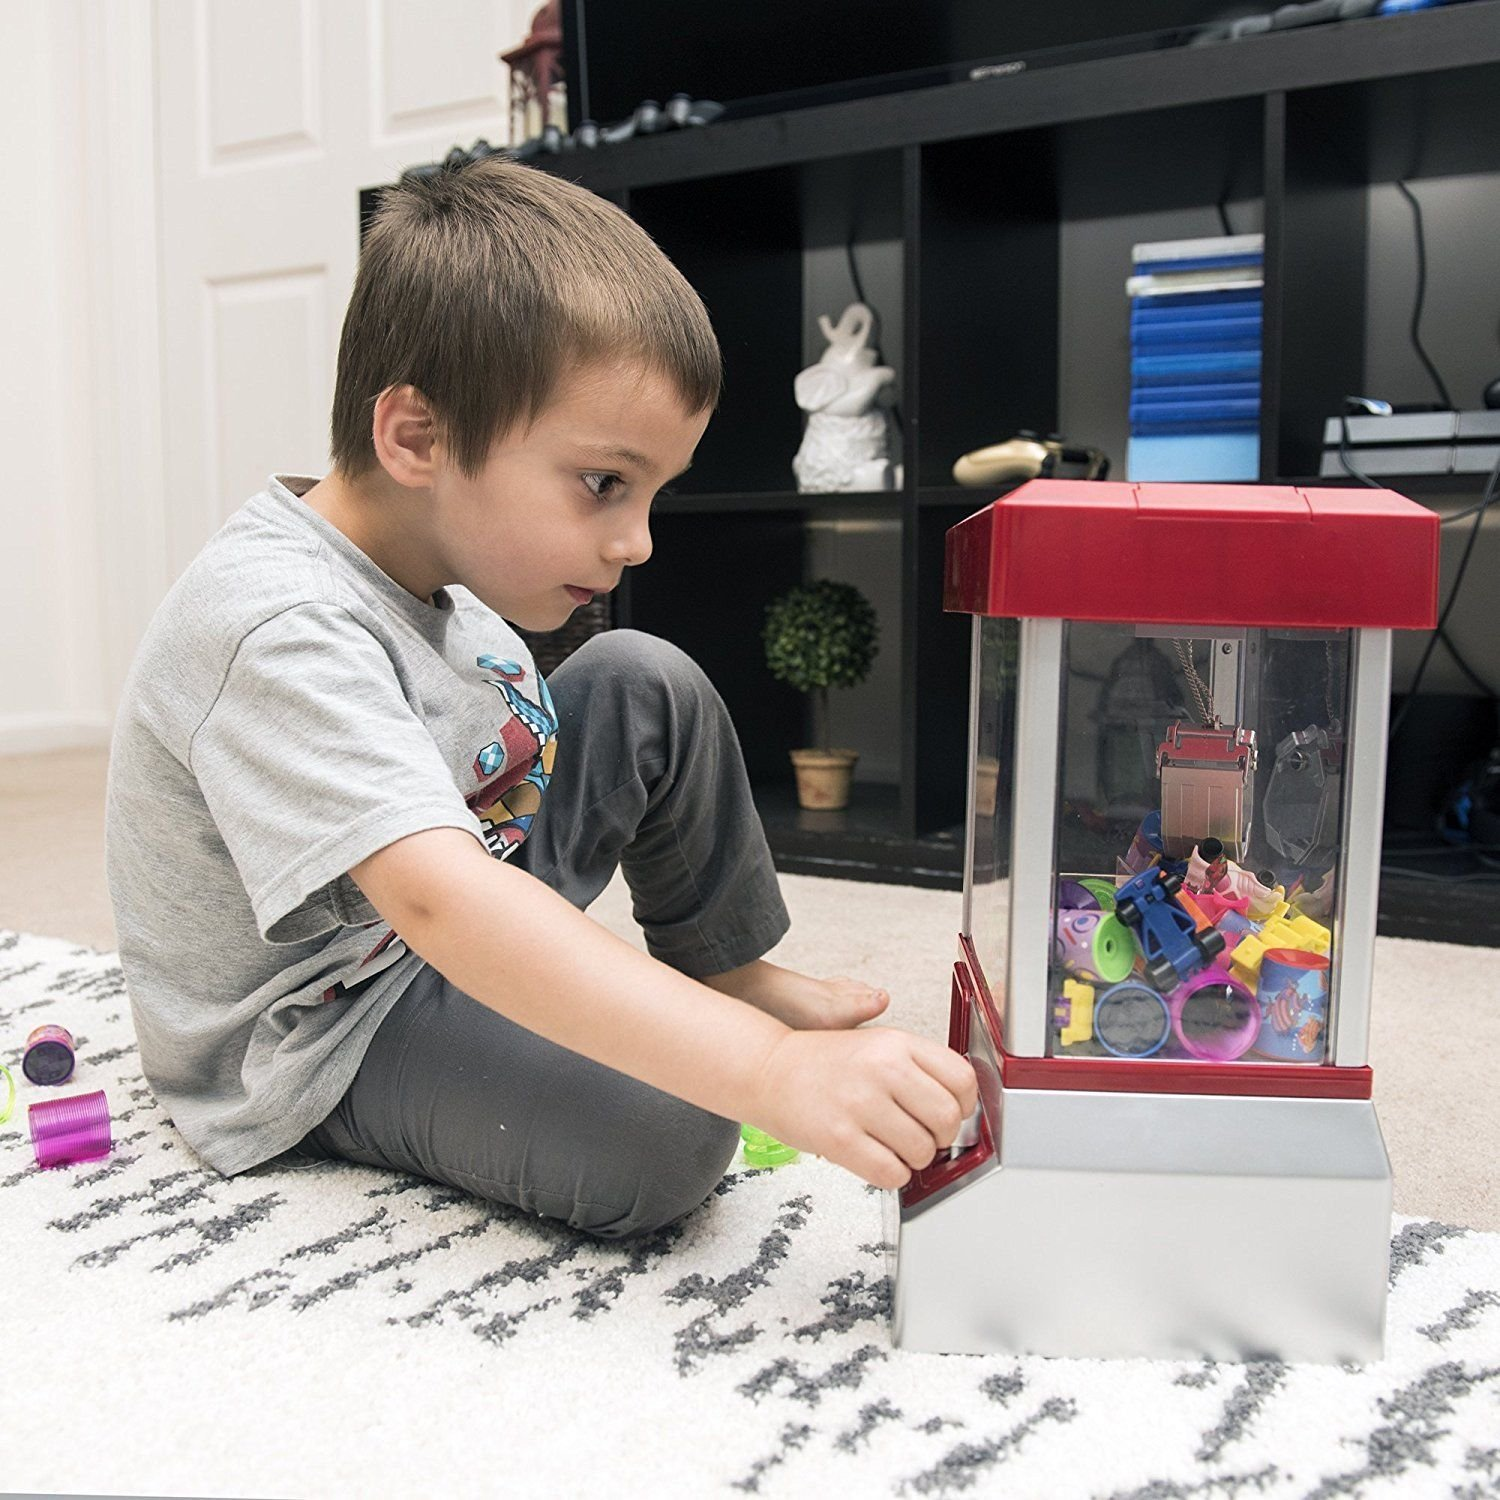 Alek...Shop Carnival Claw Game Electronic Home Arcade Toy Grabber Crane Machine Features And Exciting by Alek...Shop (Image #3)